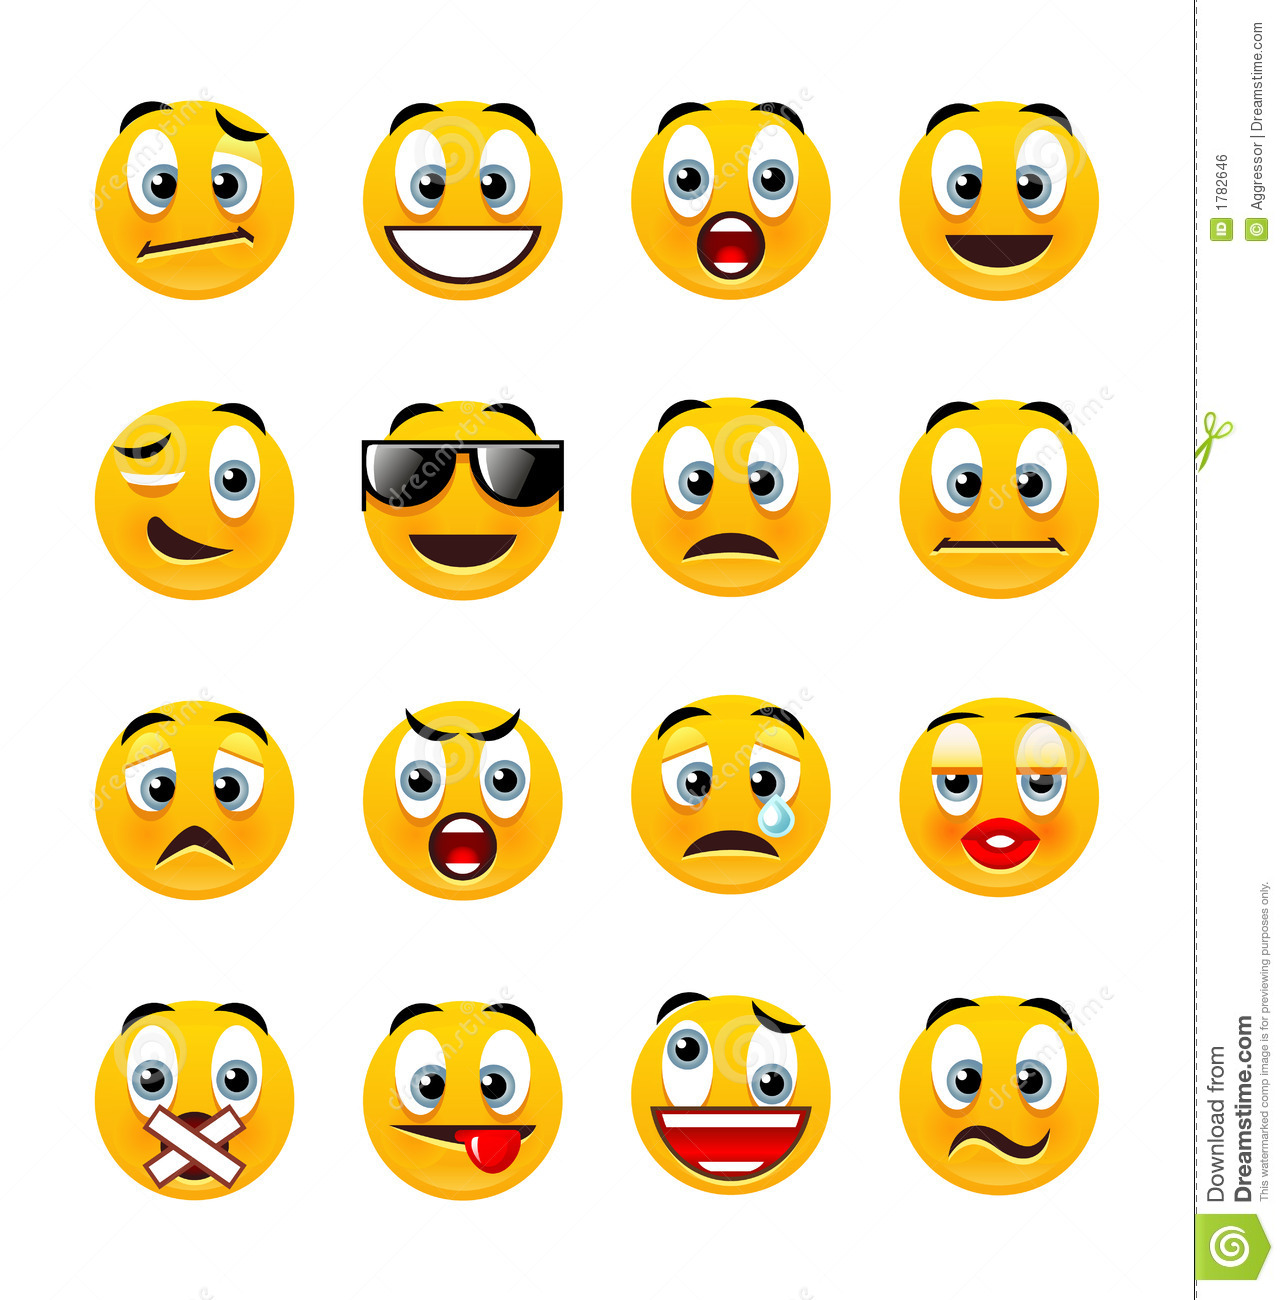 Orange smileys